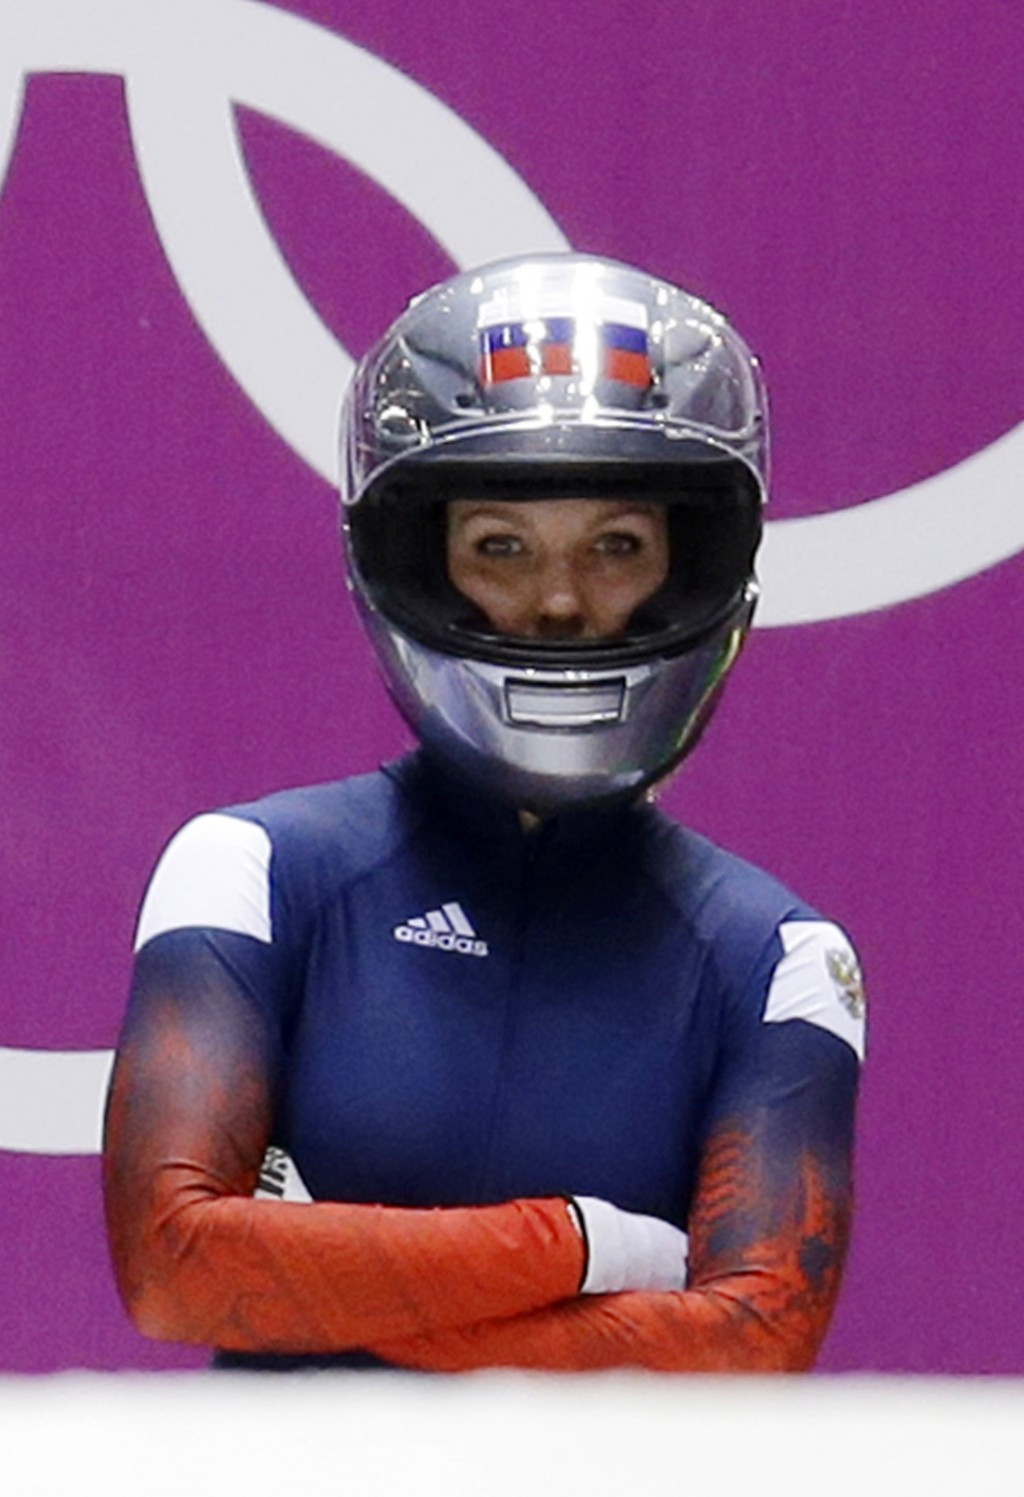 FILE - In this Feb. 18, 2014 file photo, Nadezhda Sergeeva, of Russia, prepares for the first run during the women's two-man bobsled competition at th